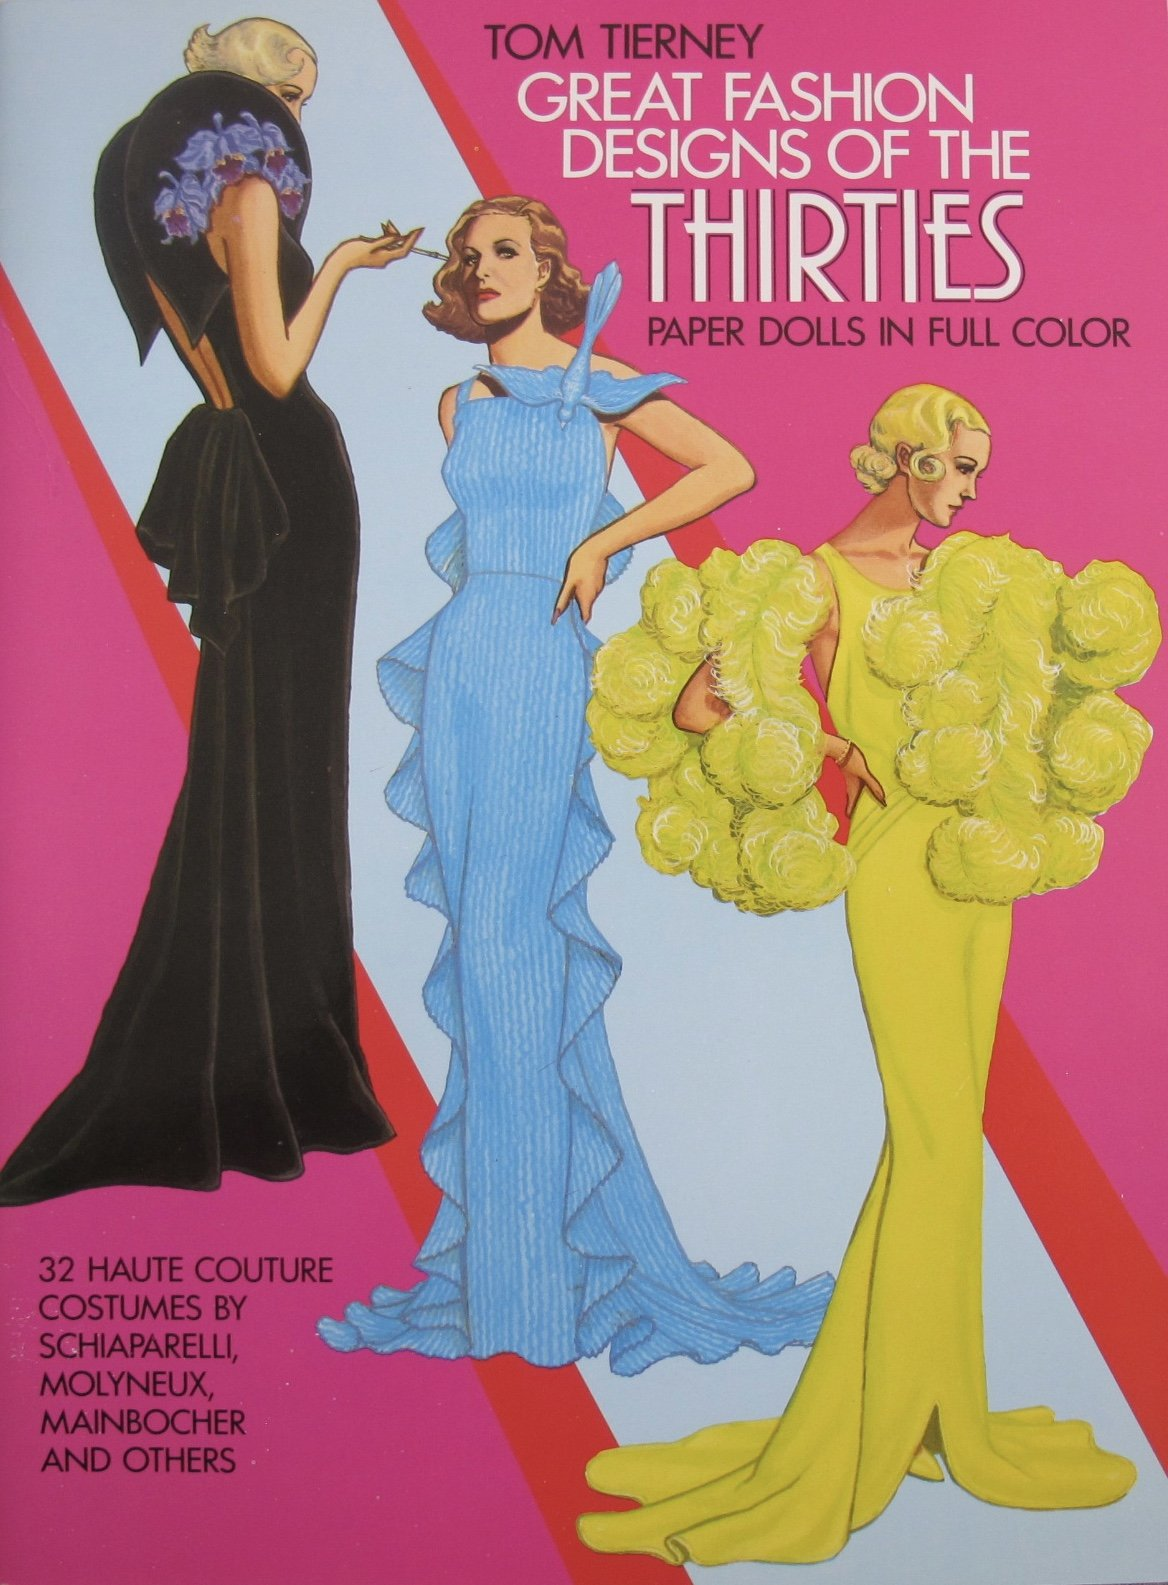 Tom Tierney GREAT FASHION DESIGNS of The THIRTIES PAPER DOLLS in Full Color CUT OUT BOOK (UNCUT) w 2 DOLLS & 32 Haute Couture COSTUMES (1984 Dover)